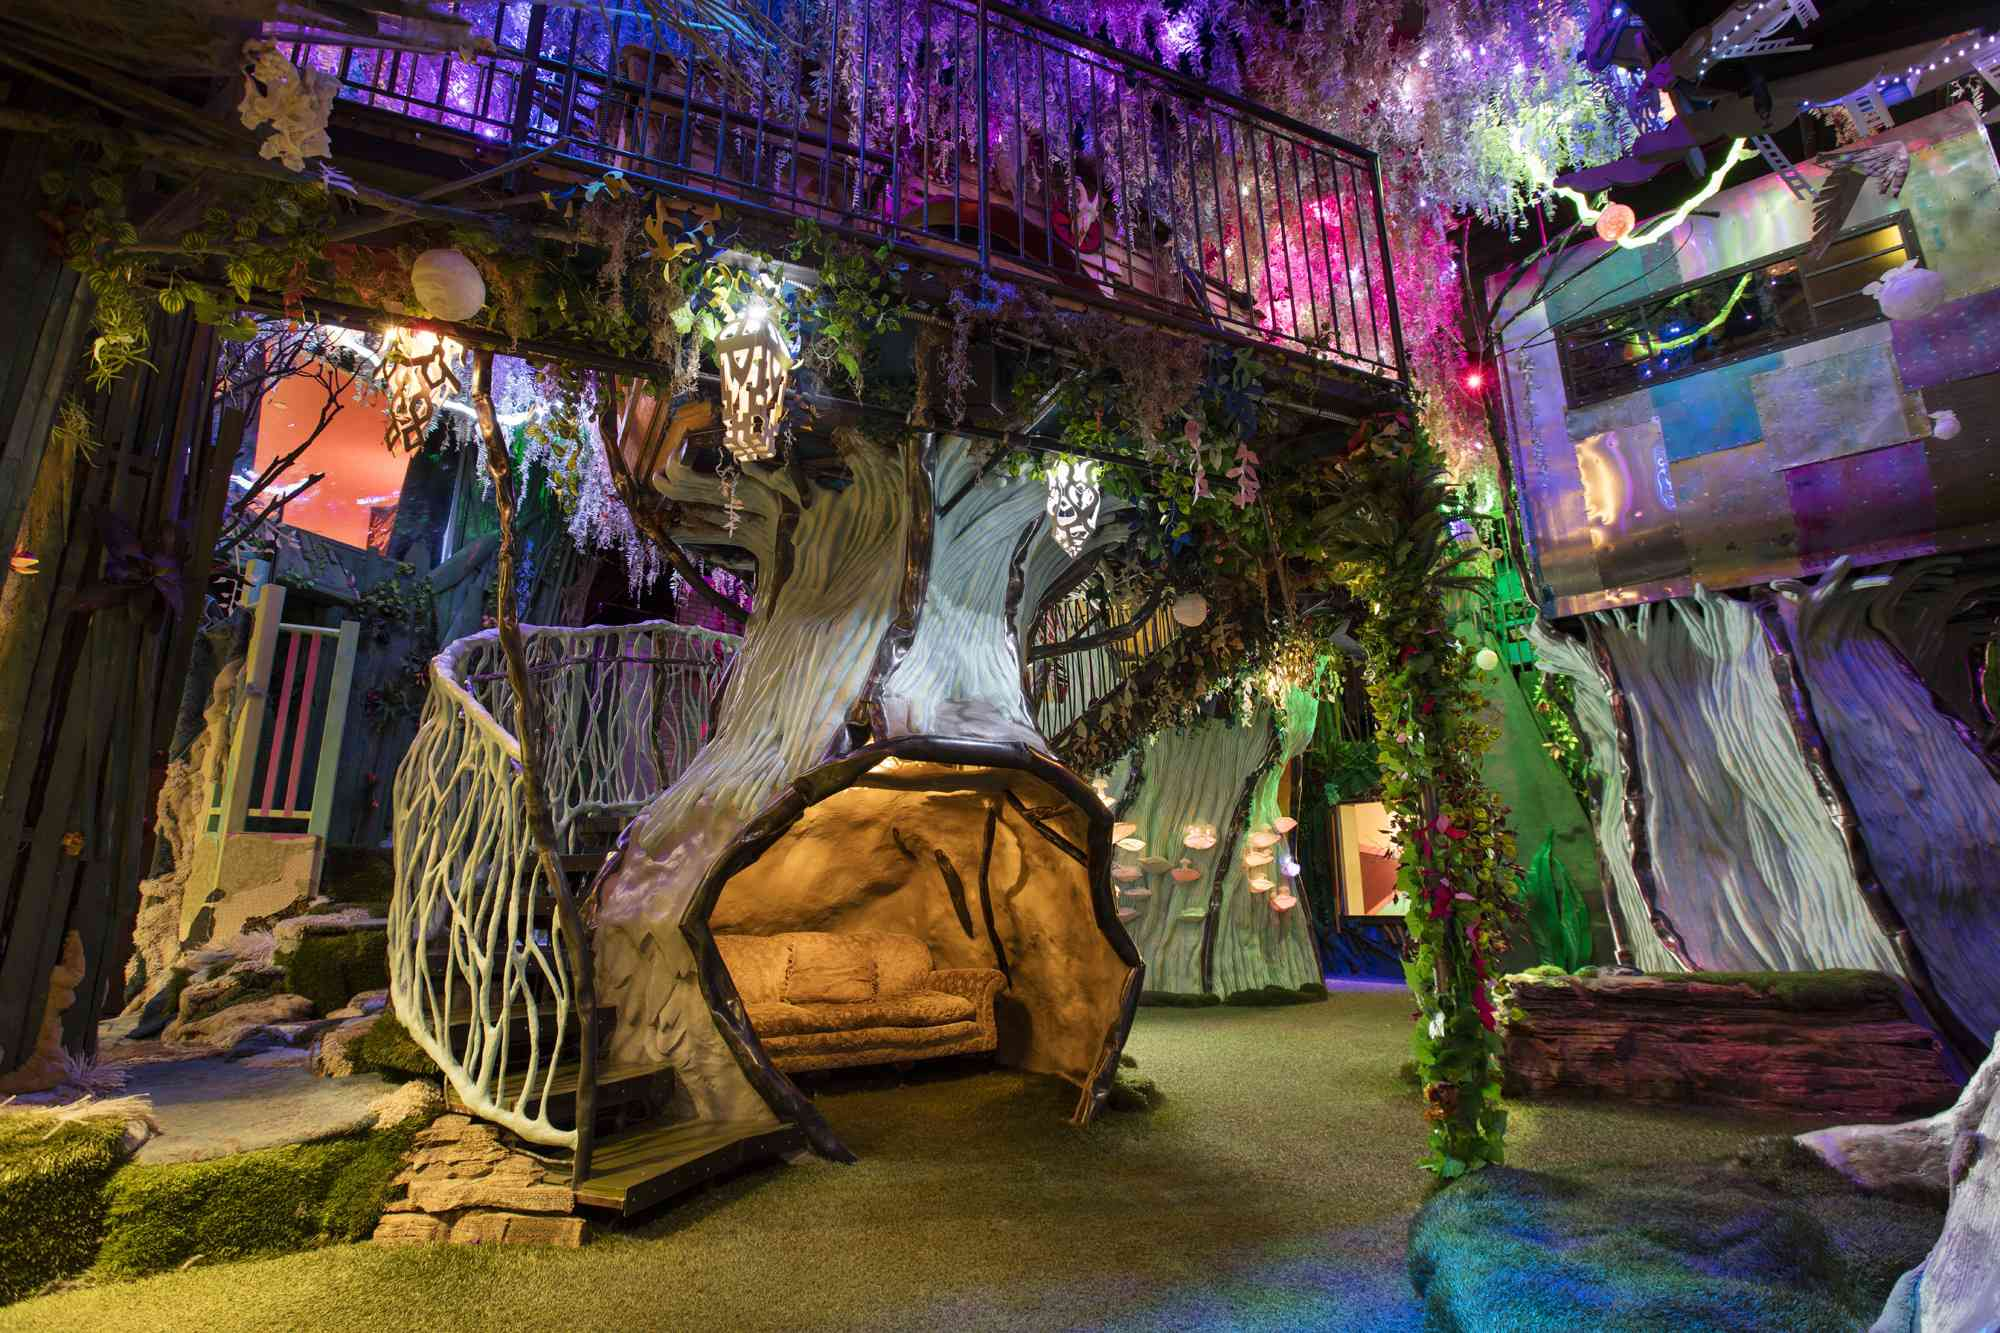 Part of Meow Wolf's House of Eternal Return. There is an artifical tree with a couch nestled into the base. A staircase wraps around the tree to a second level. The second level has vines wrapped around the metal fence